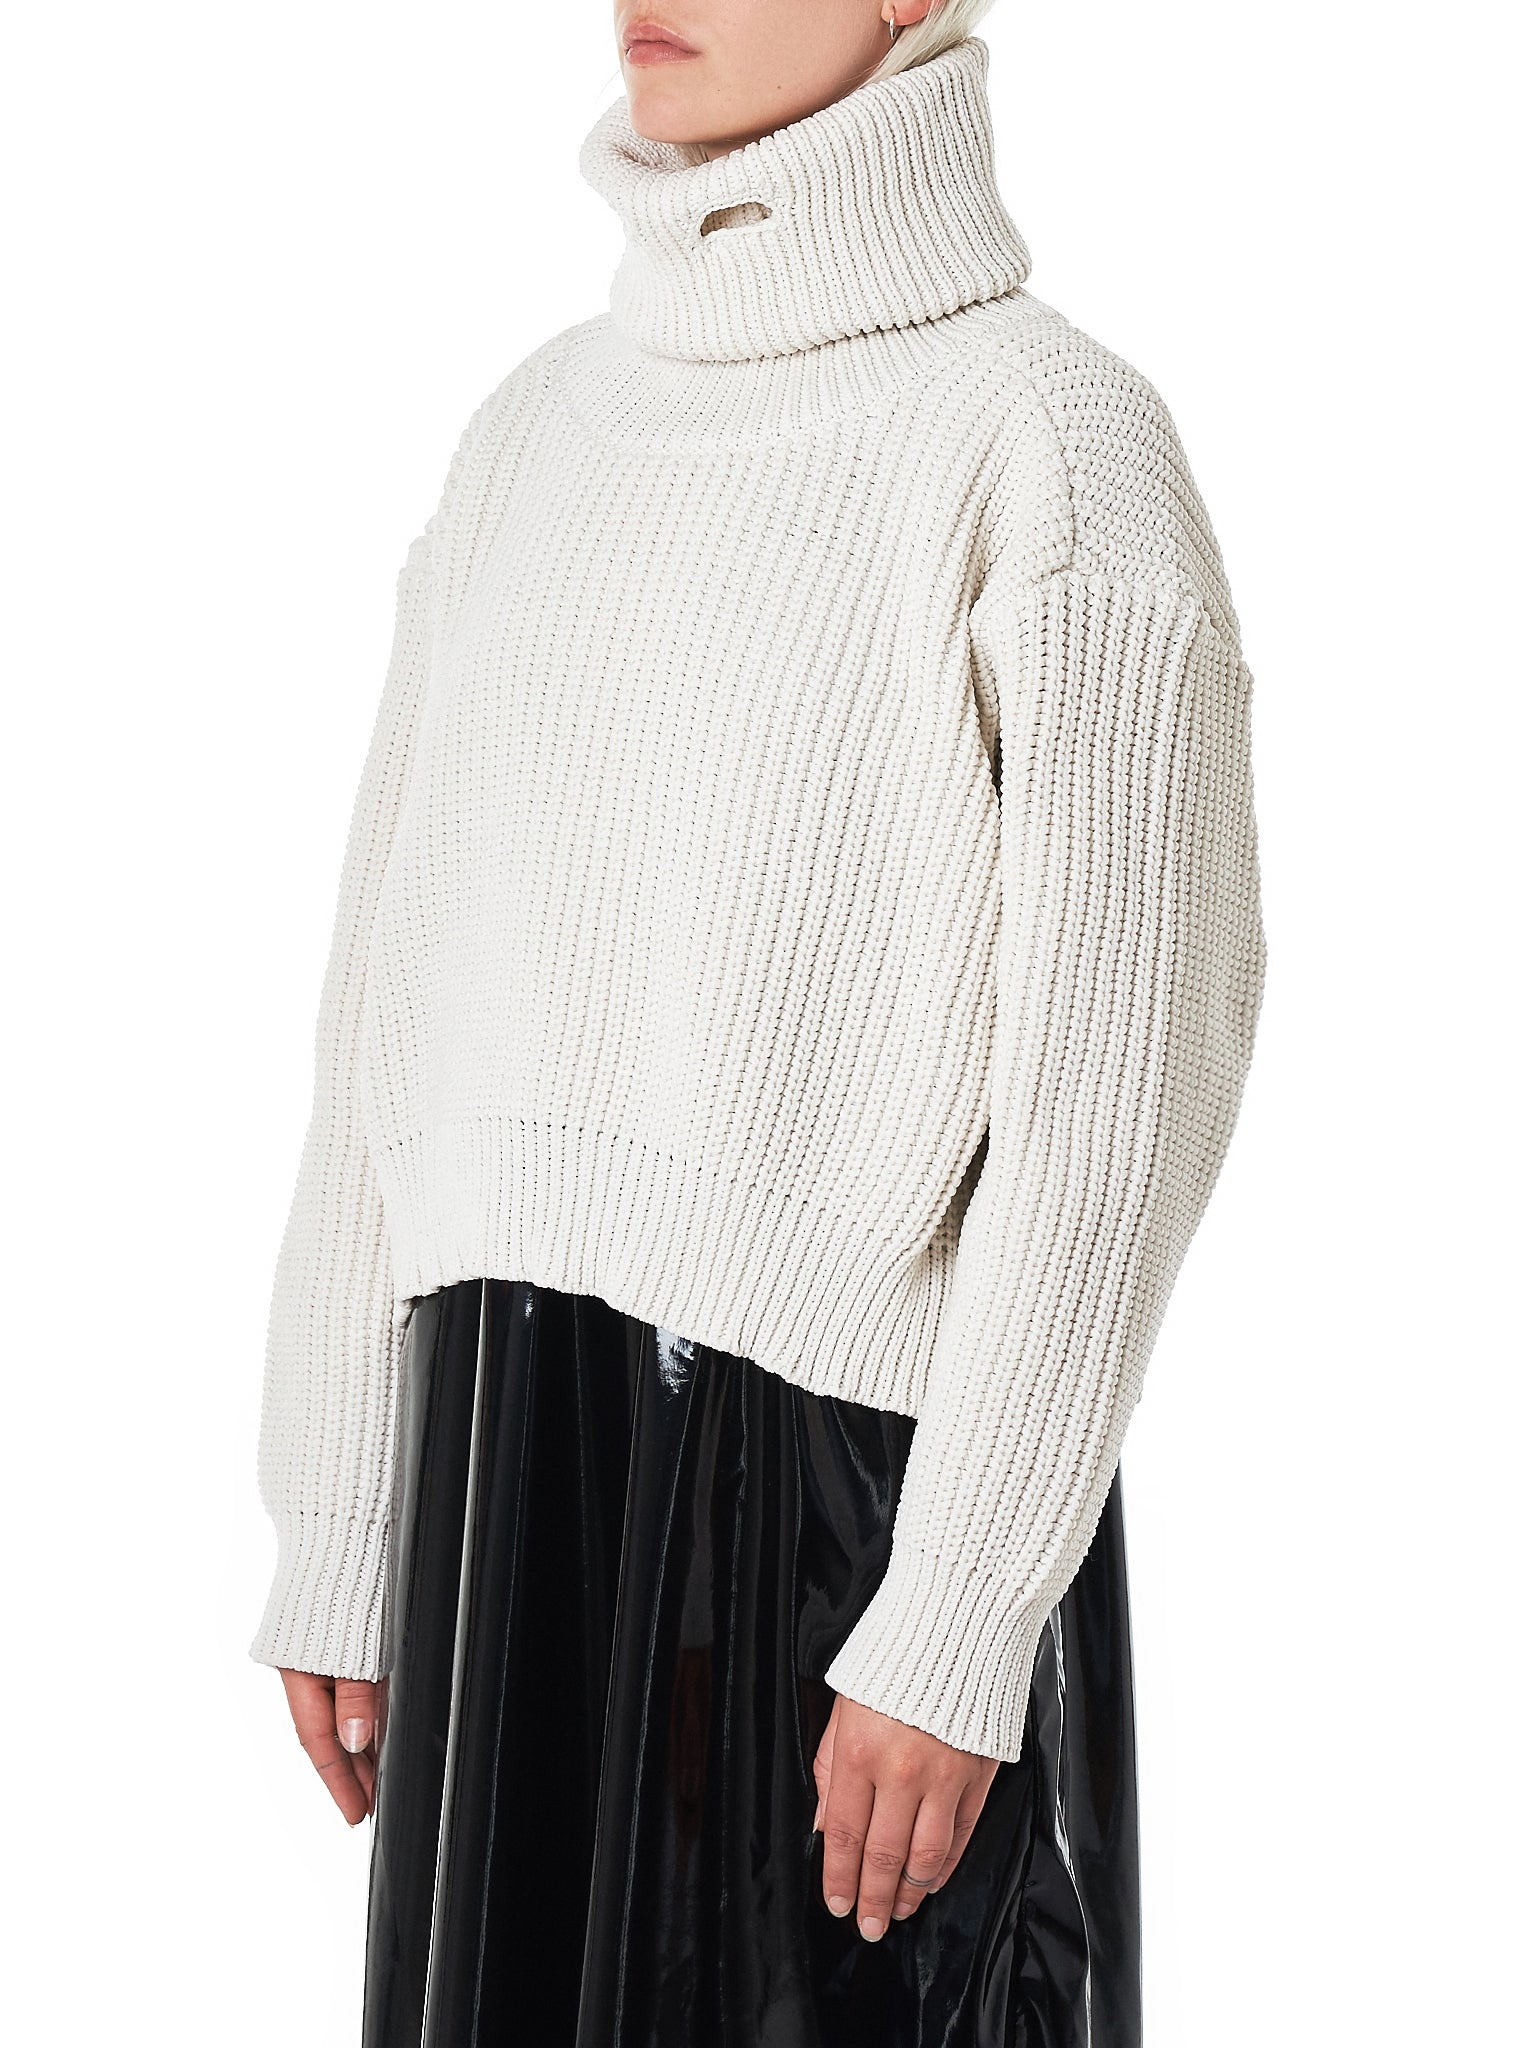 Funnelneck Knit Sweater (032-OFF-WHITE-POLY)